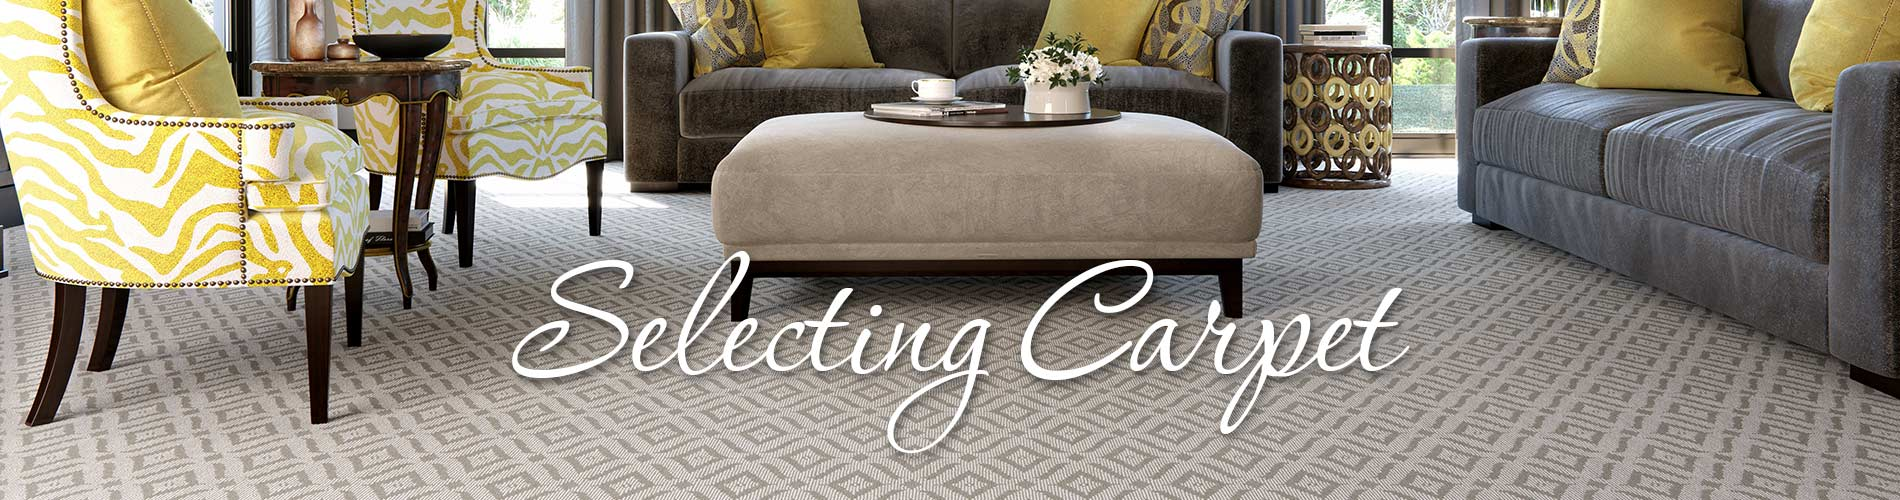 Selecting Carpet Abbey Carpet Floor Auburn Ca Floortex